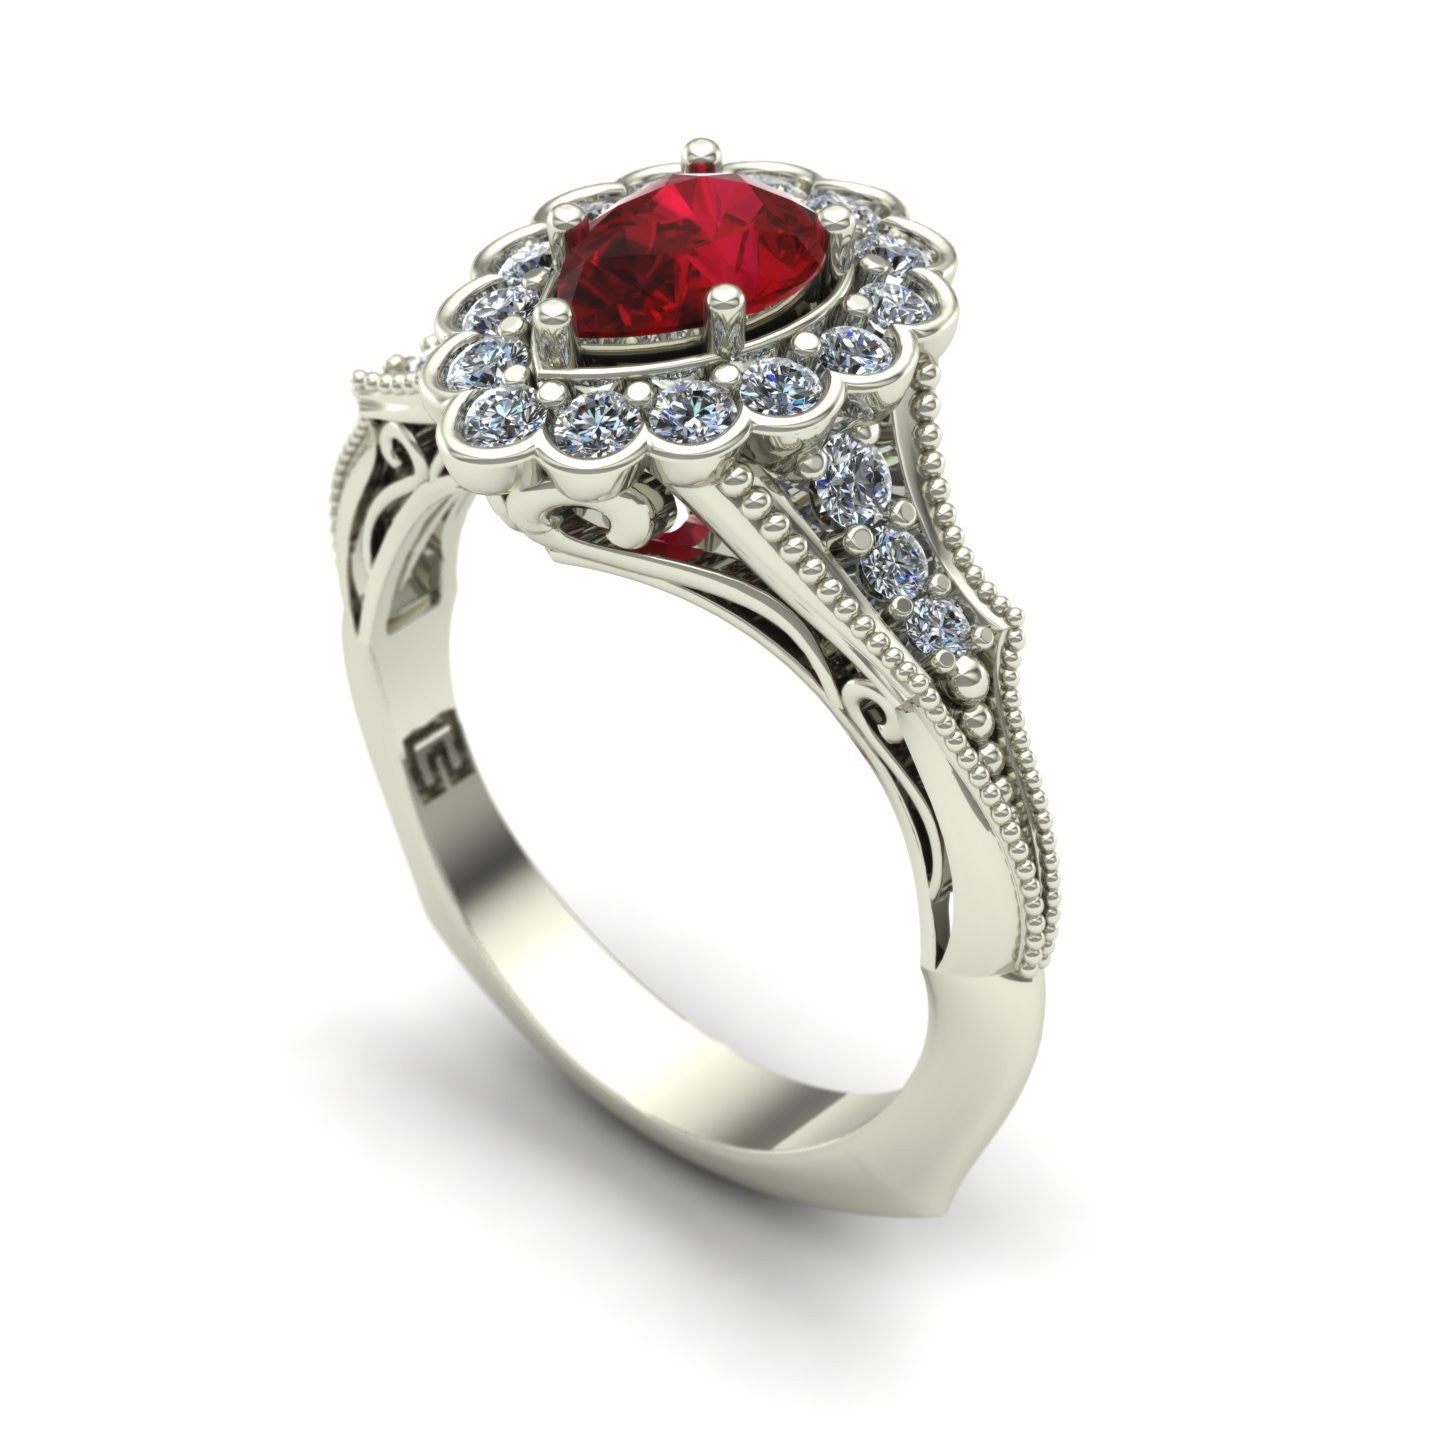 Ruby and diamond pear vintage ring in 18k white gold